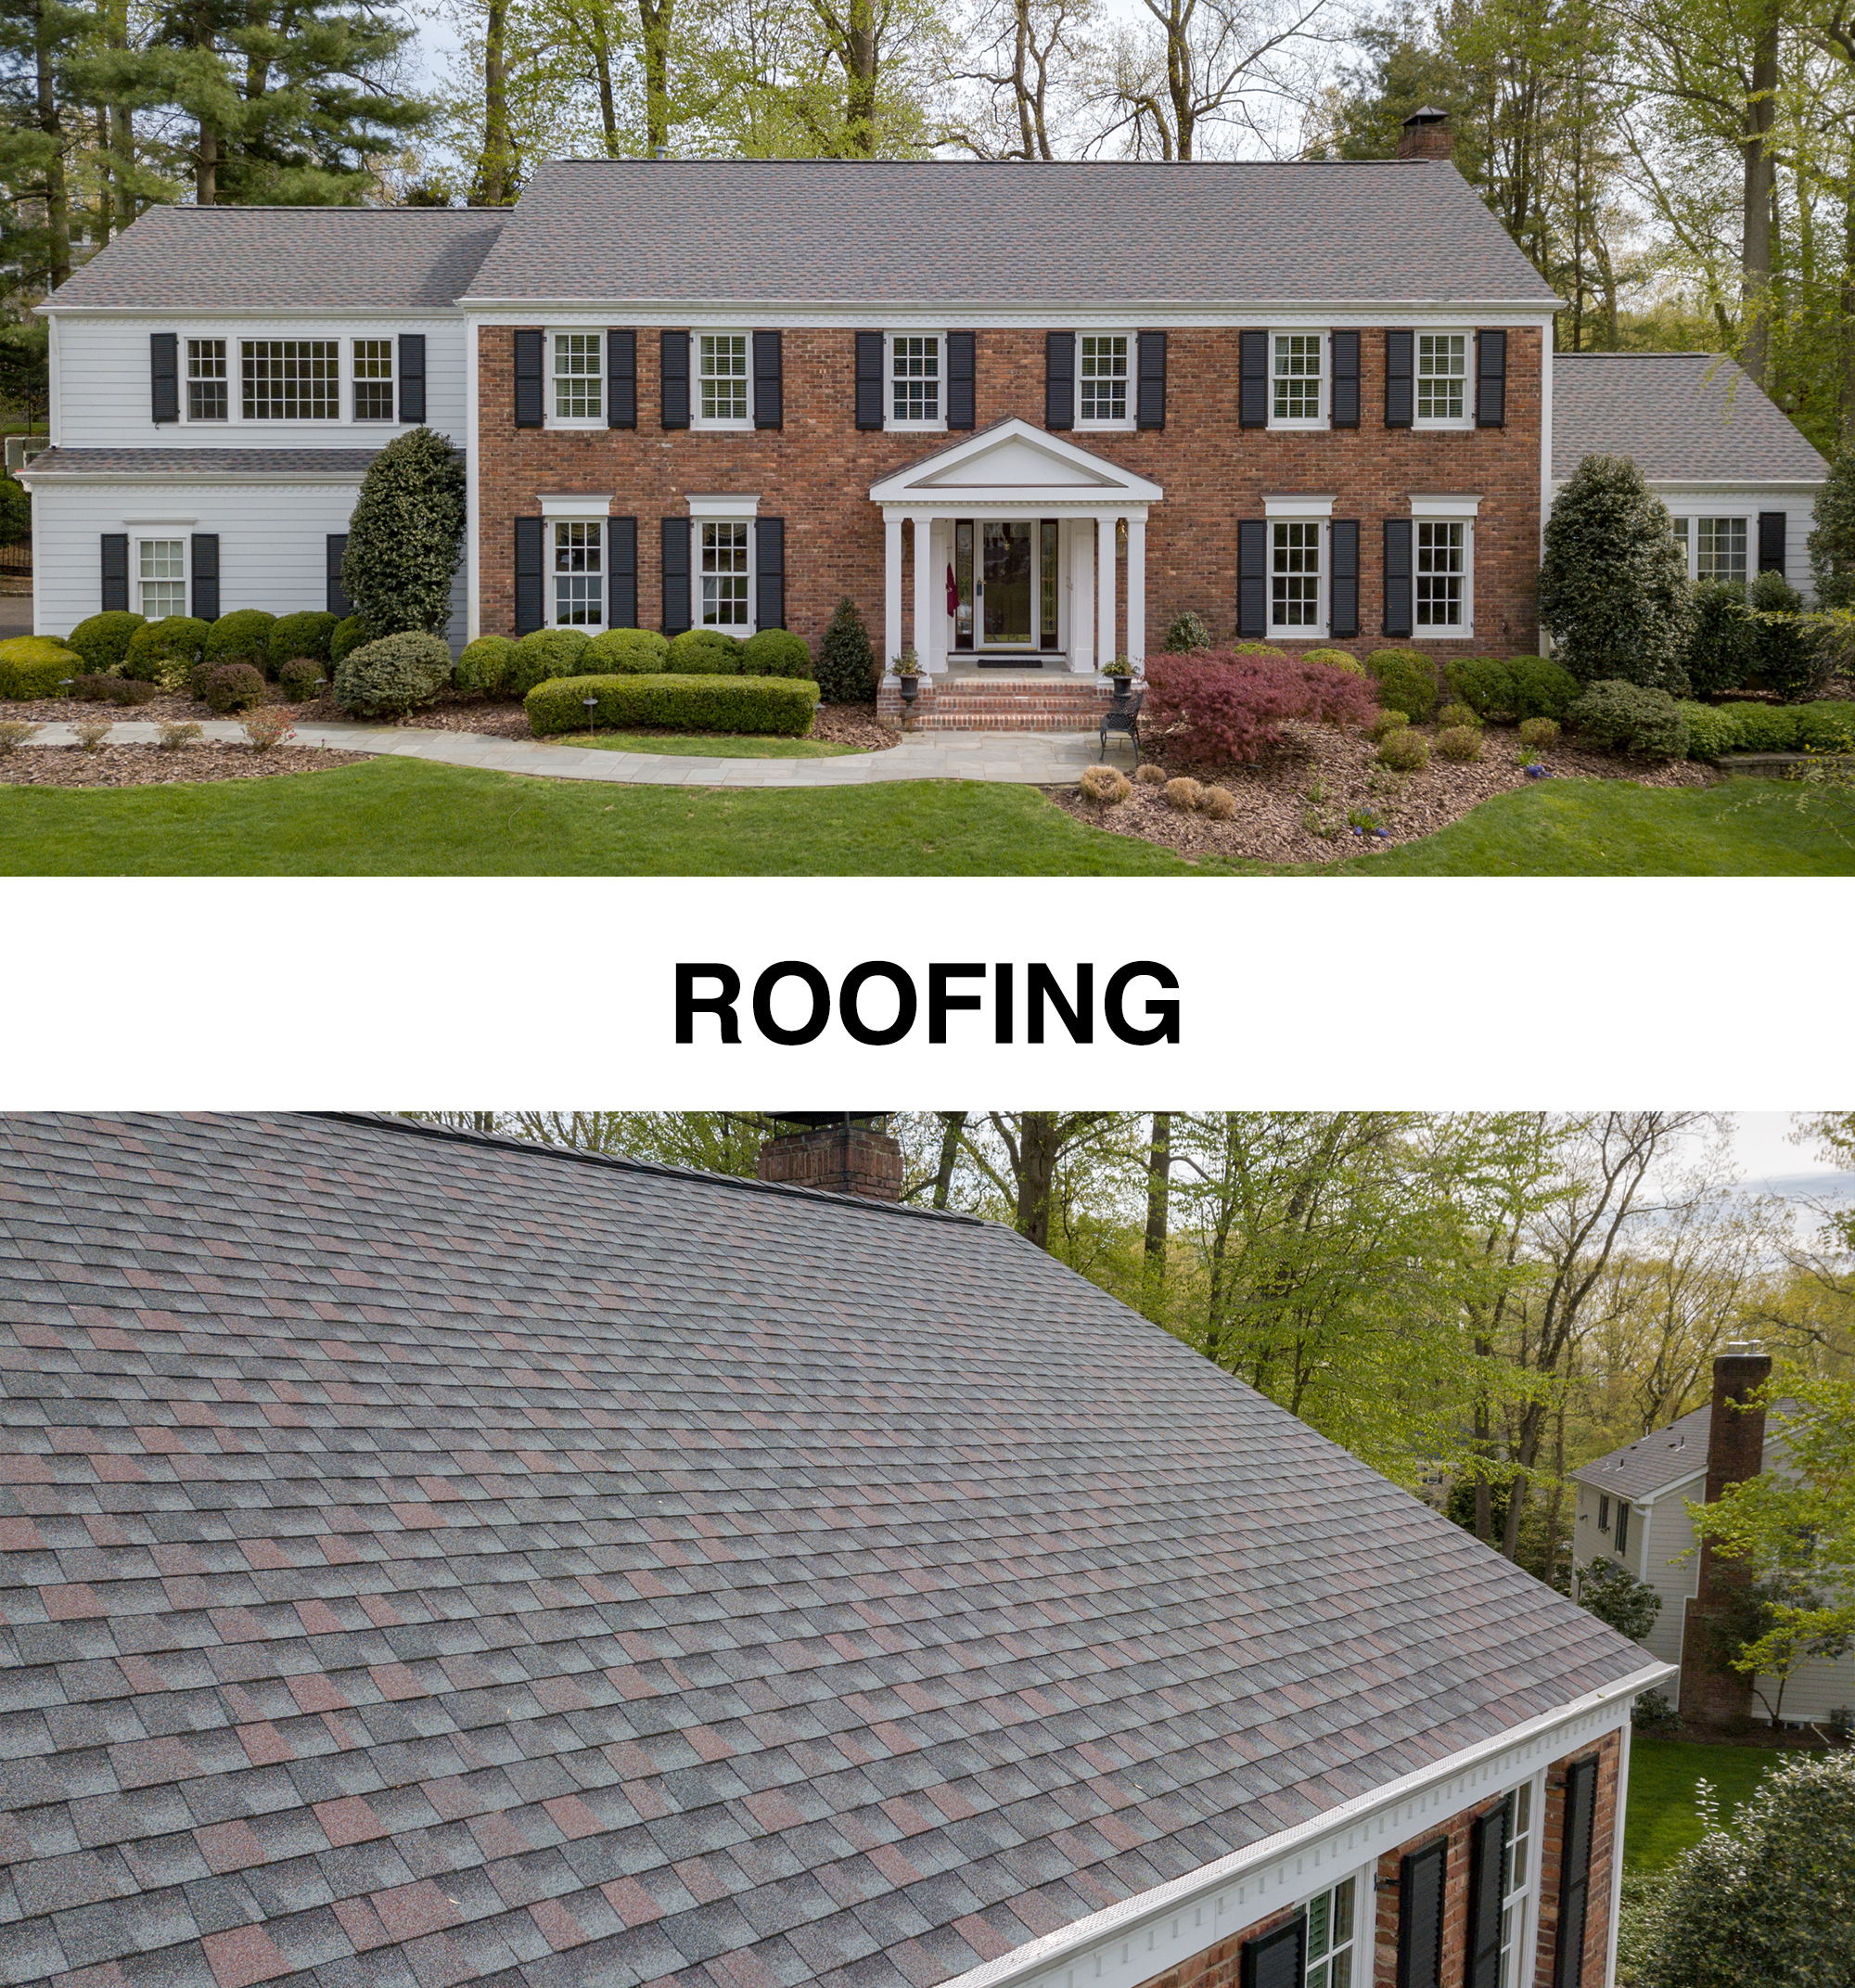 Roofing-Repair-Installation-Westfield-Chatham-HomeRemodeling-NJ